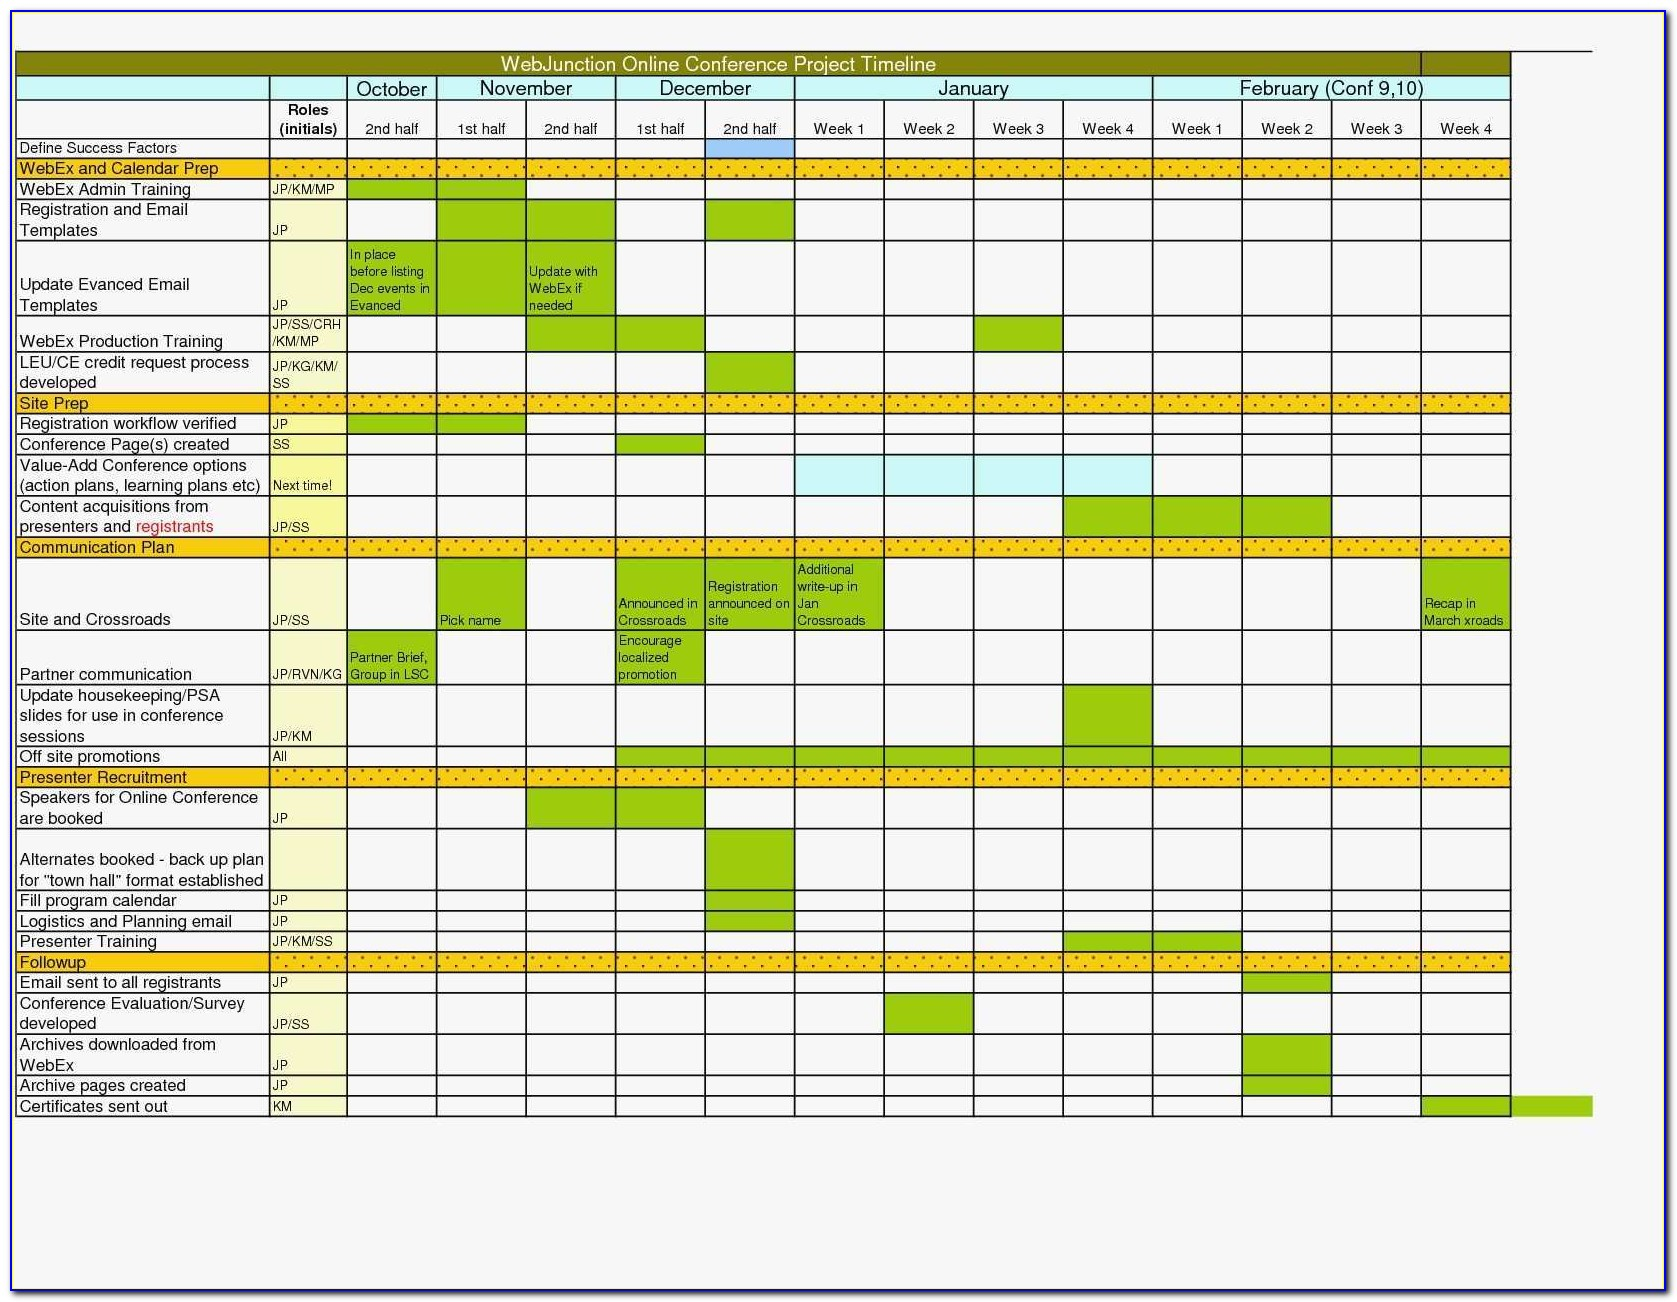 Excel Workflow Calendar Template Elegant Acquisition Timeline Template Leoncapers